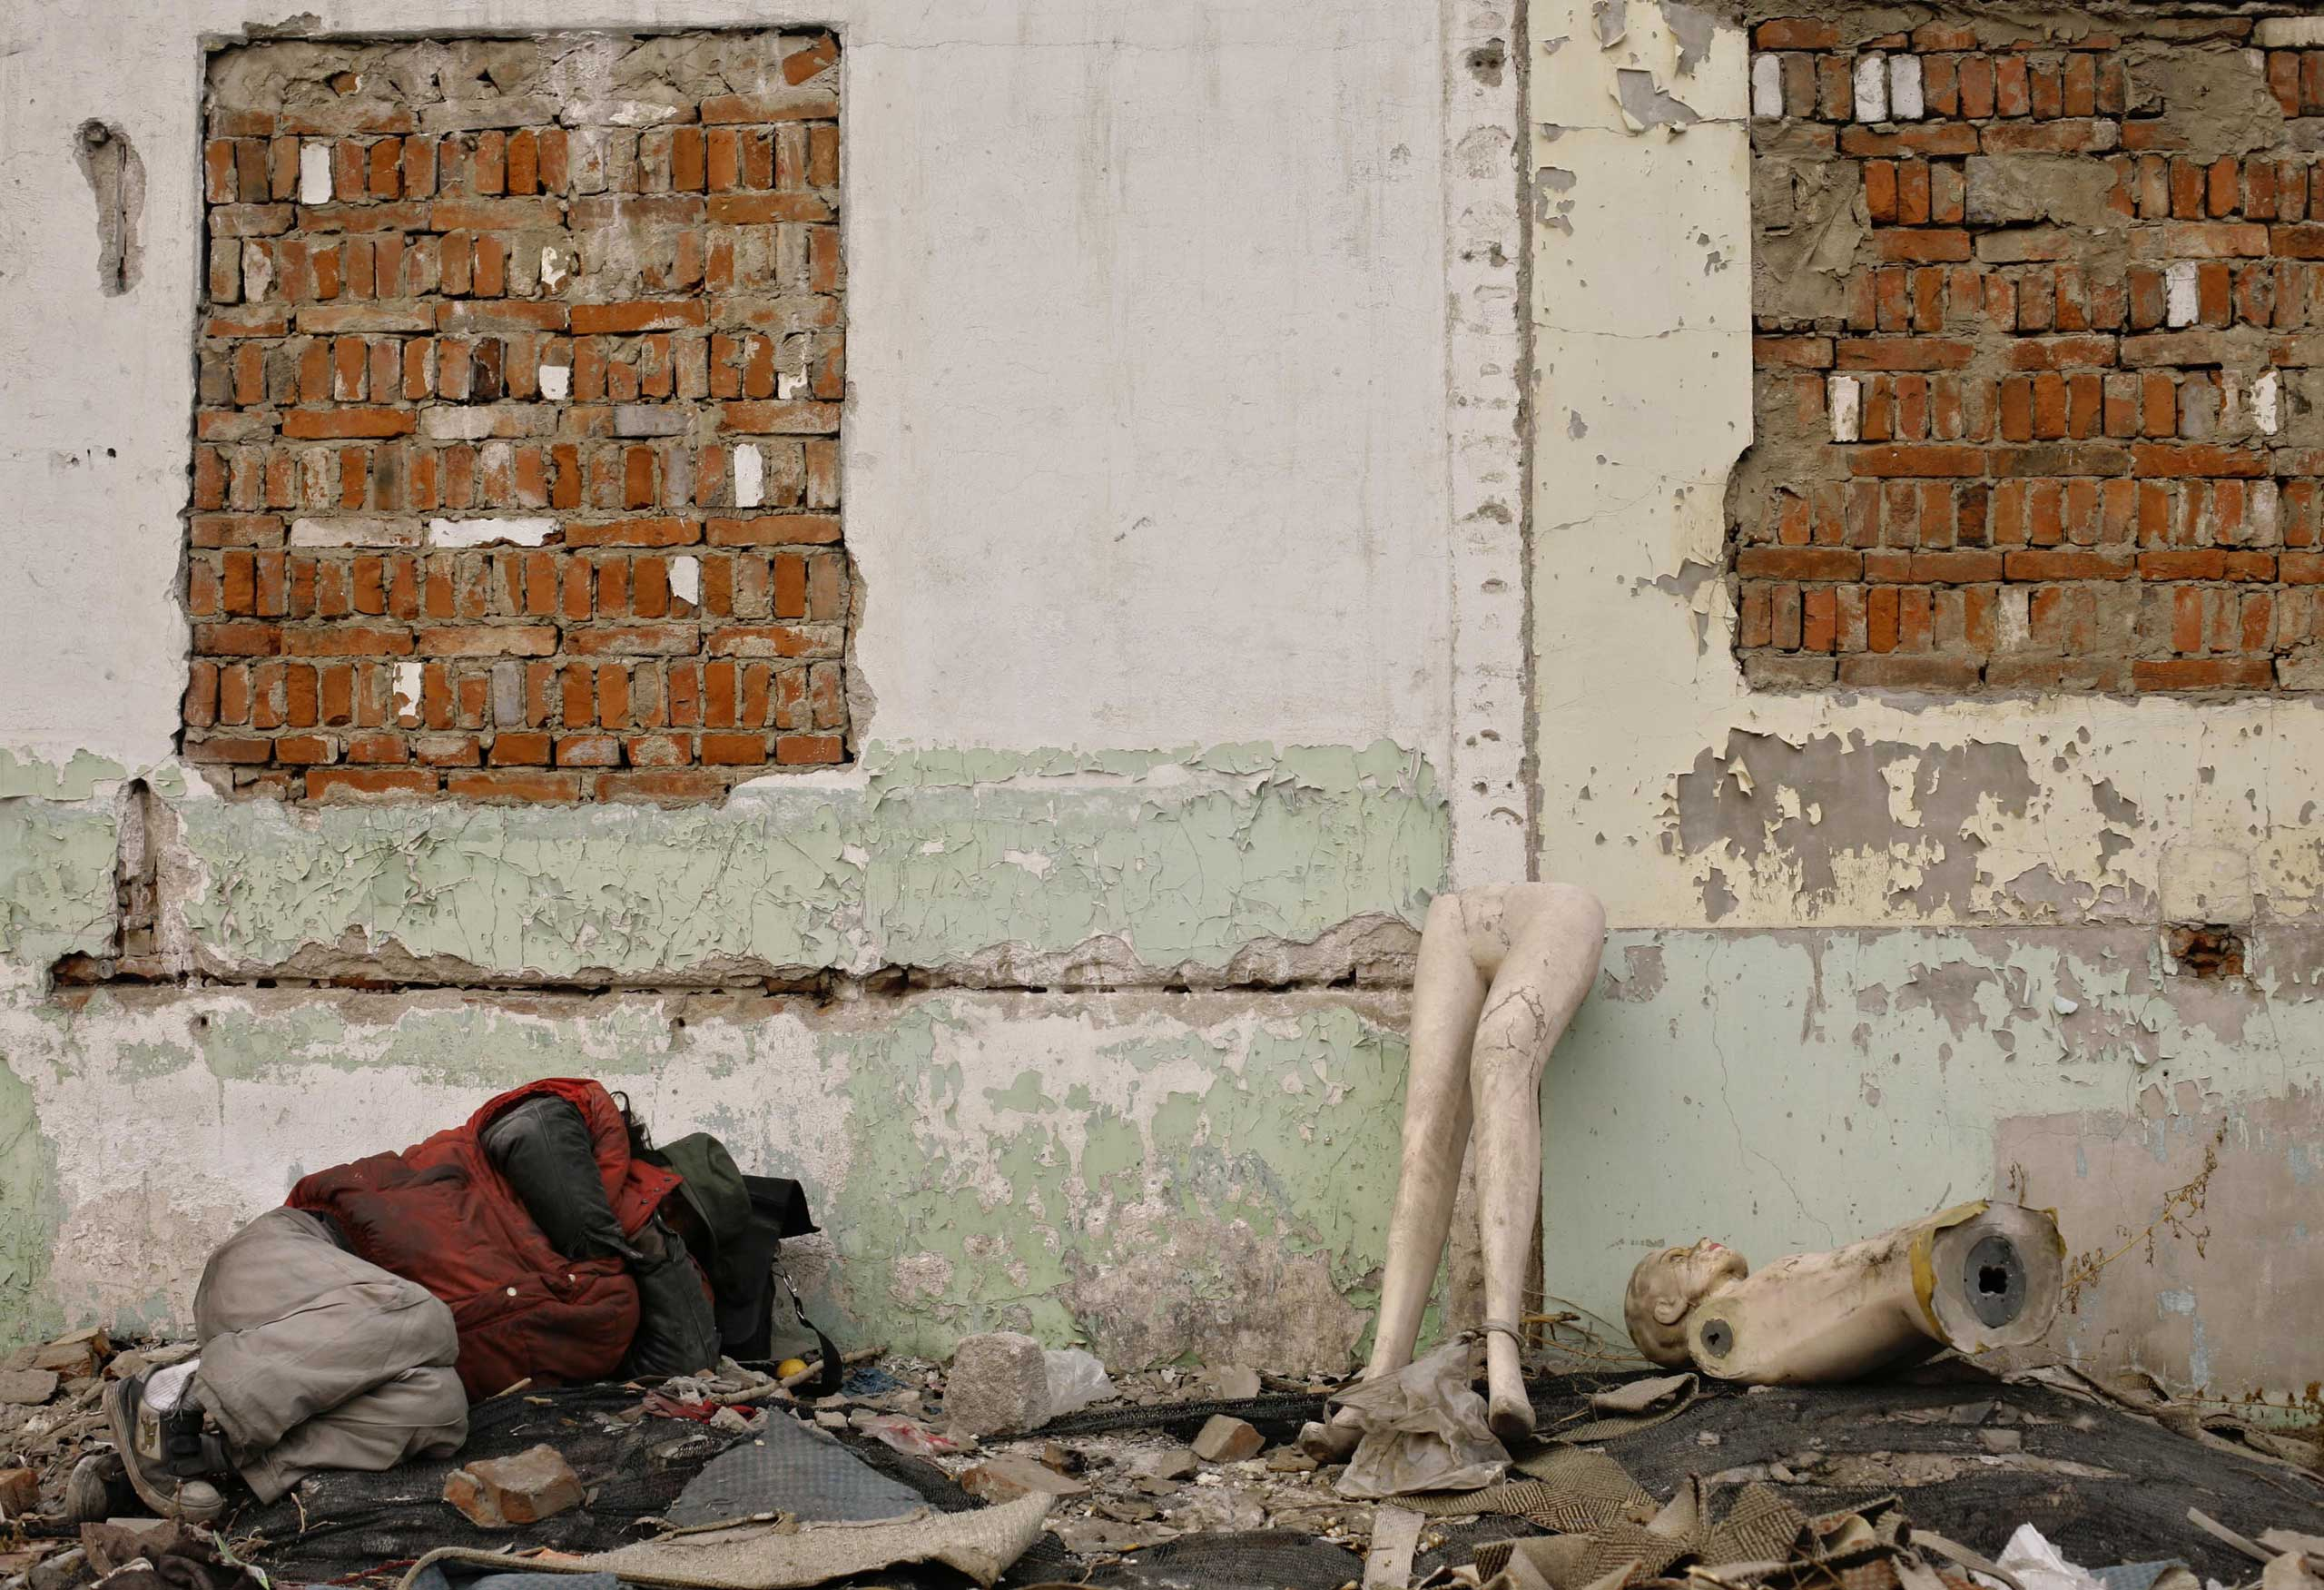 A man sleeps next to pieces of mannequins amongst the rubble of a demolished house in Beijing.